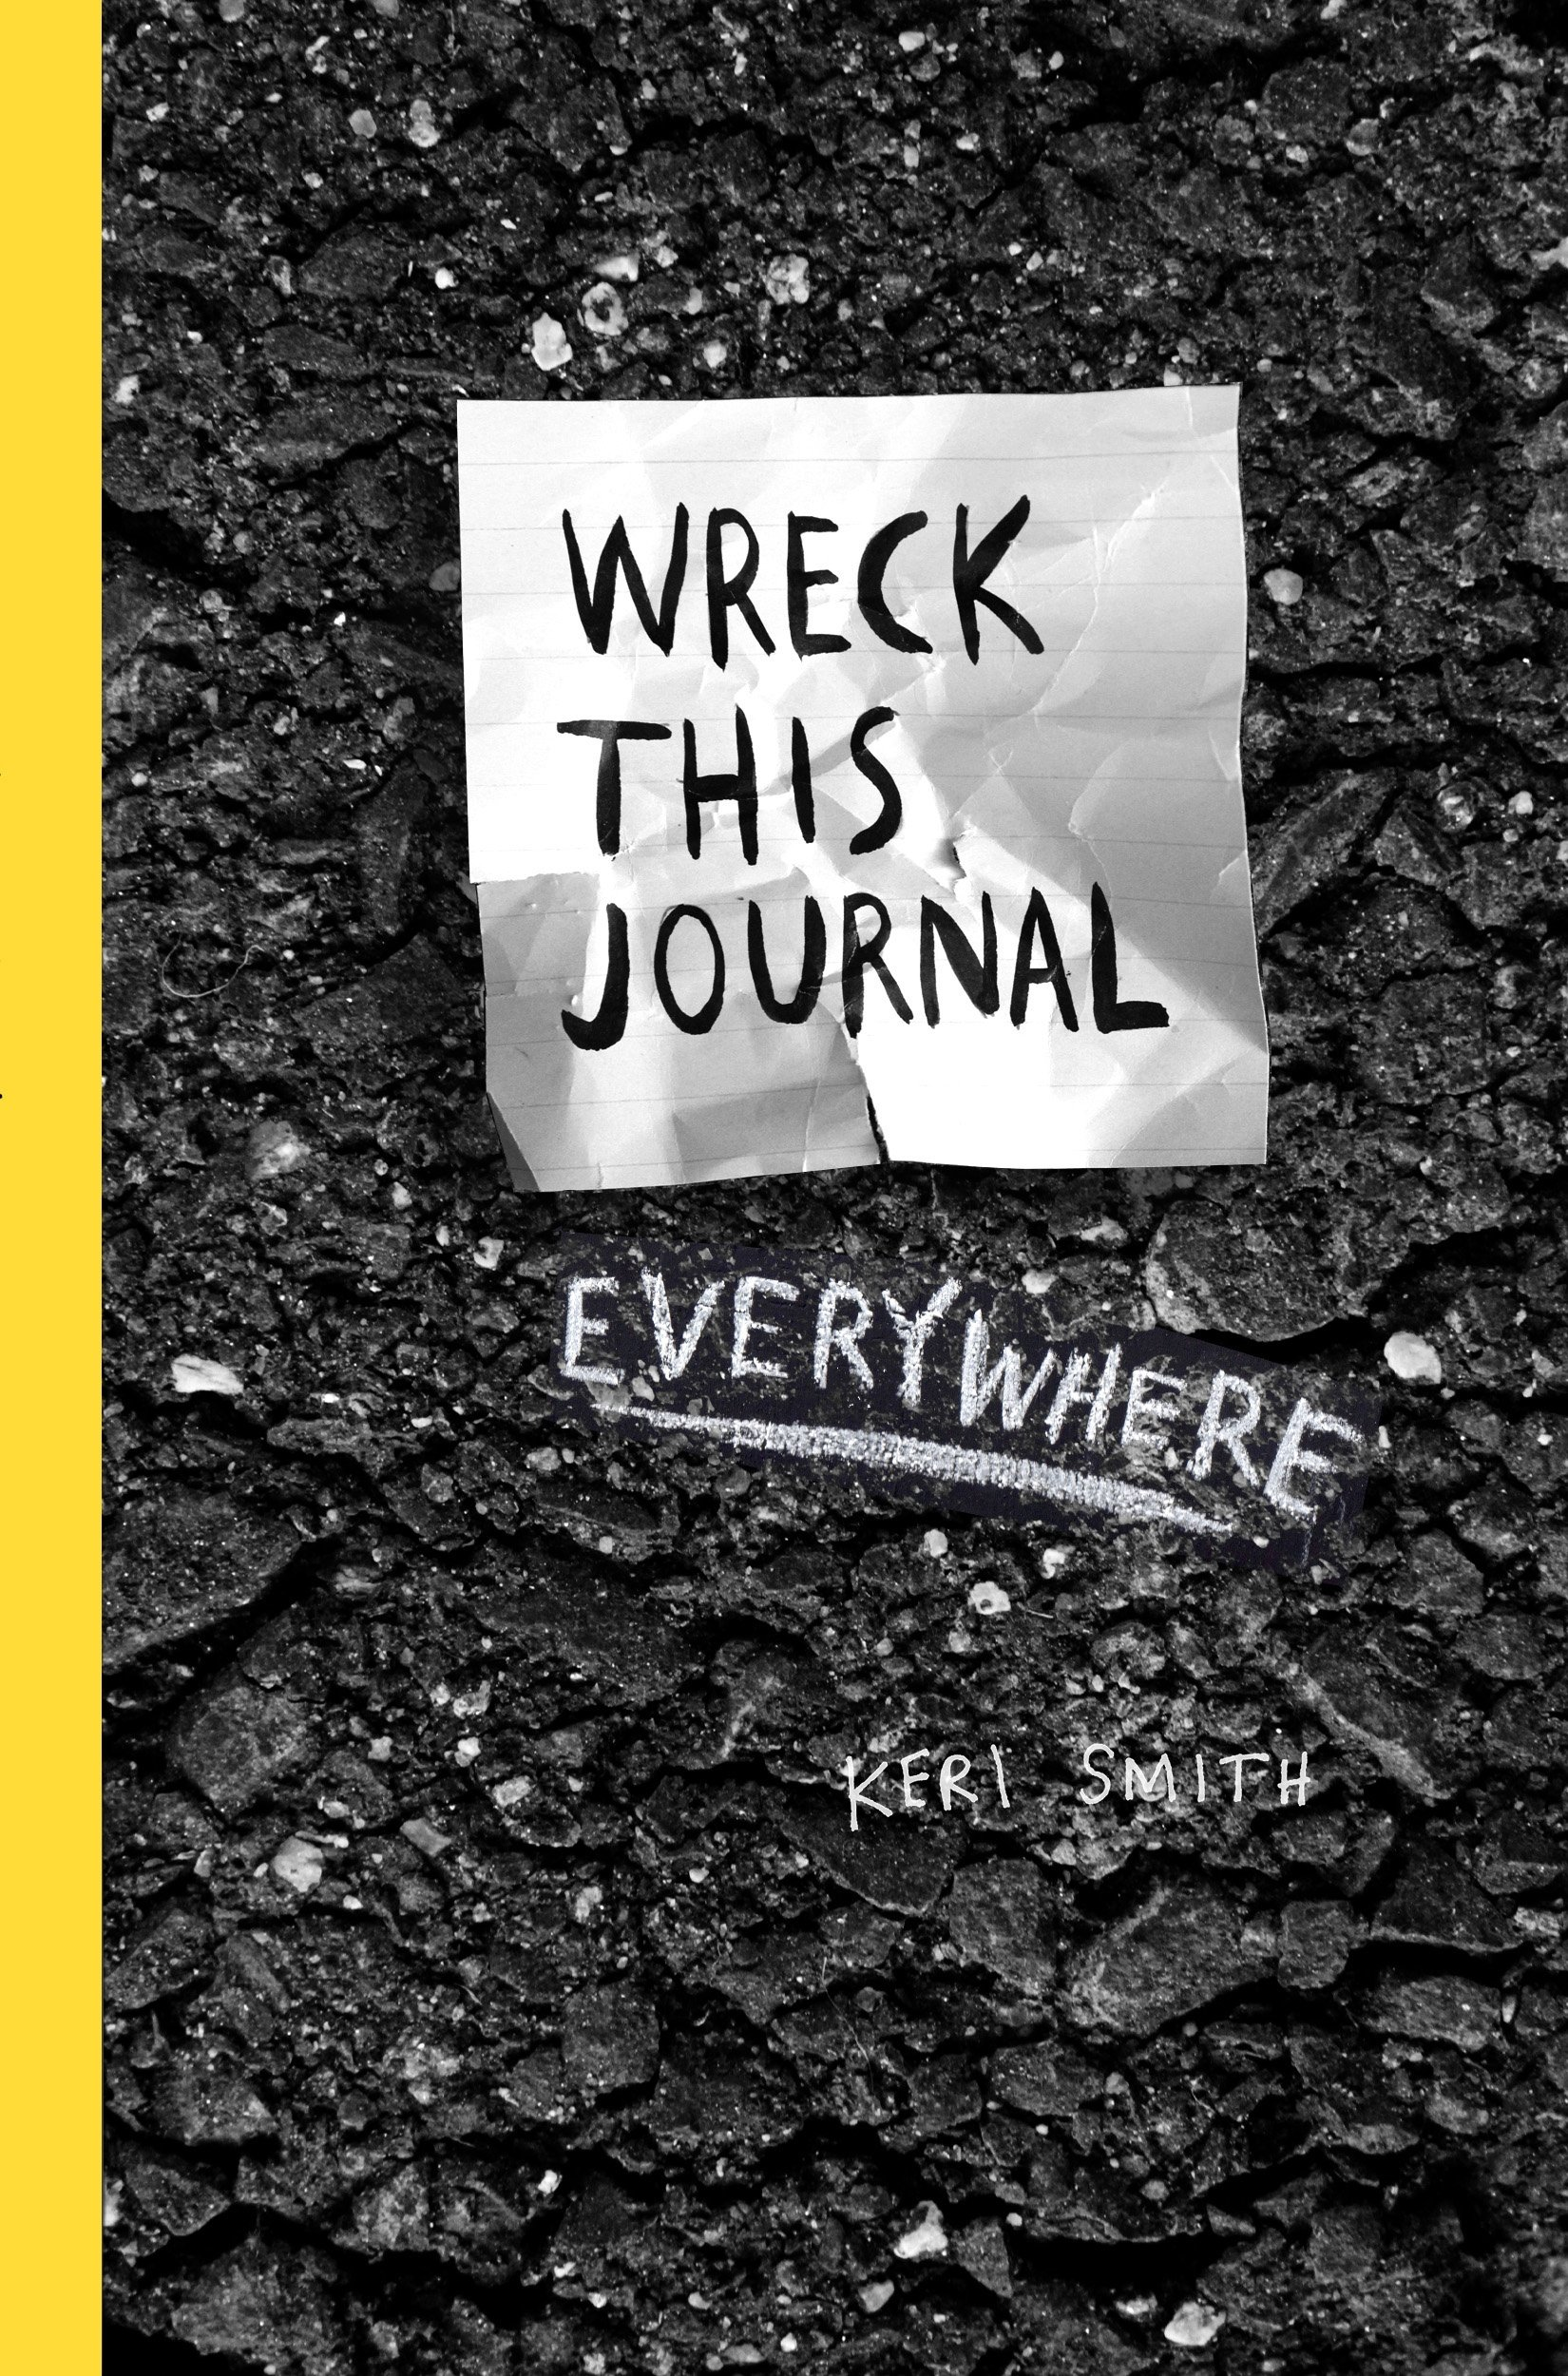 Image OfWreck This Journal Everywhere